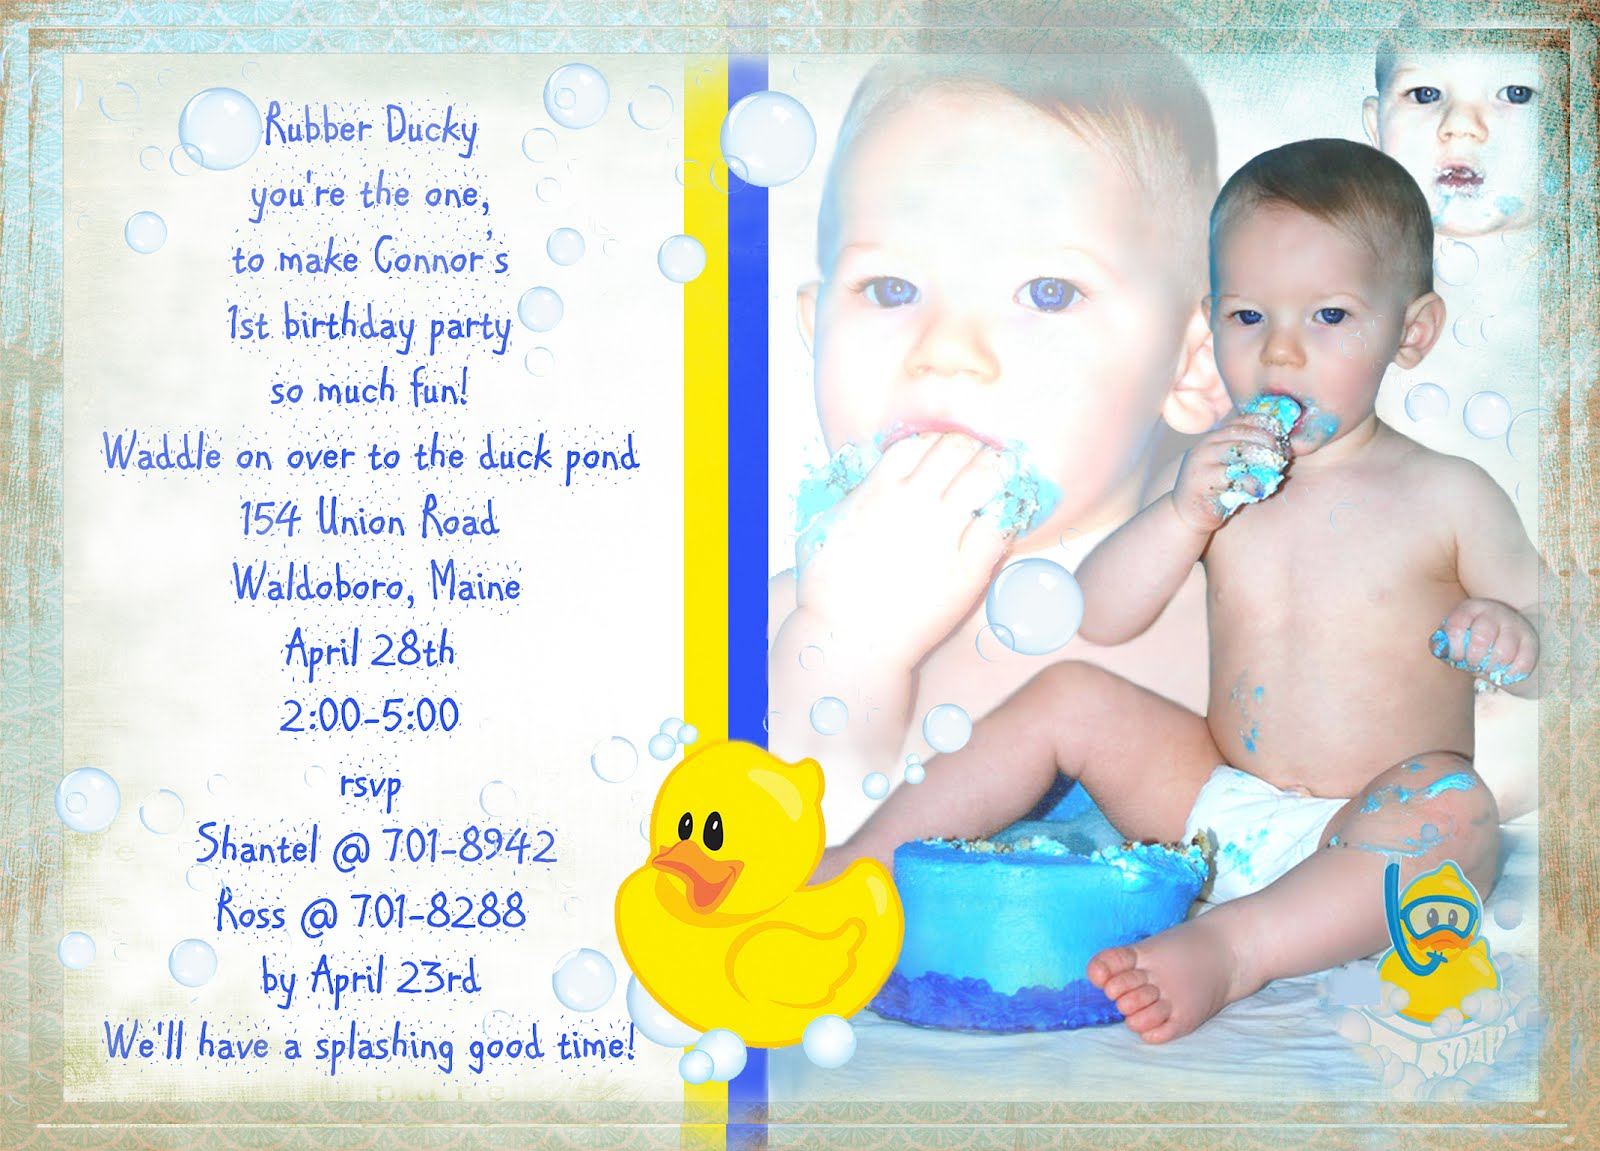 Wednesdays Grace: Rubber Duck Birthday Invitation